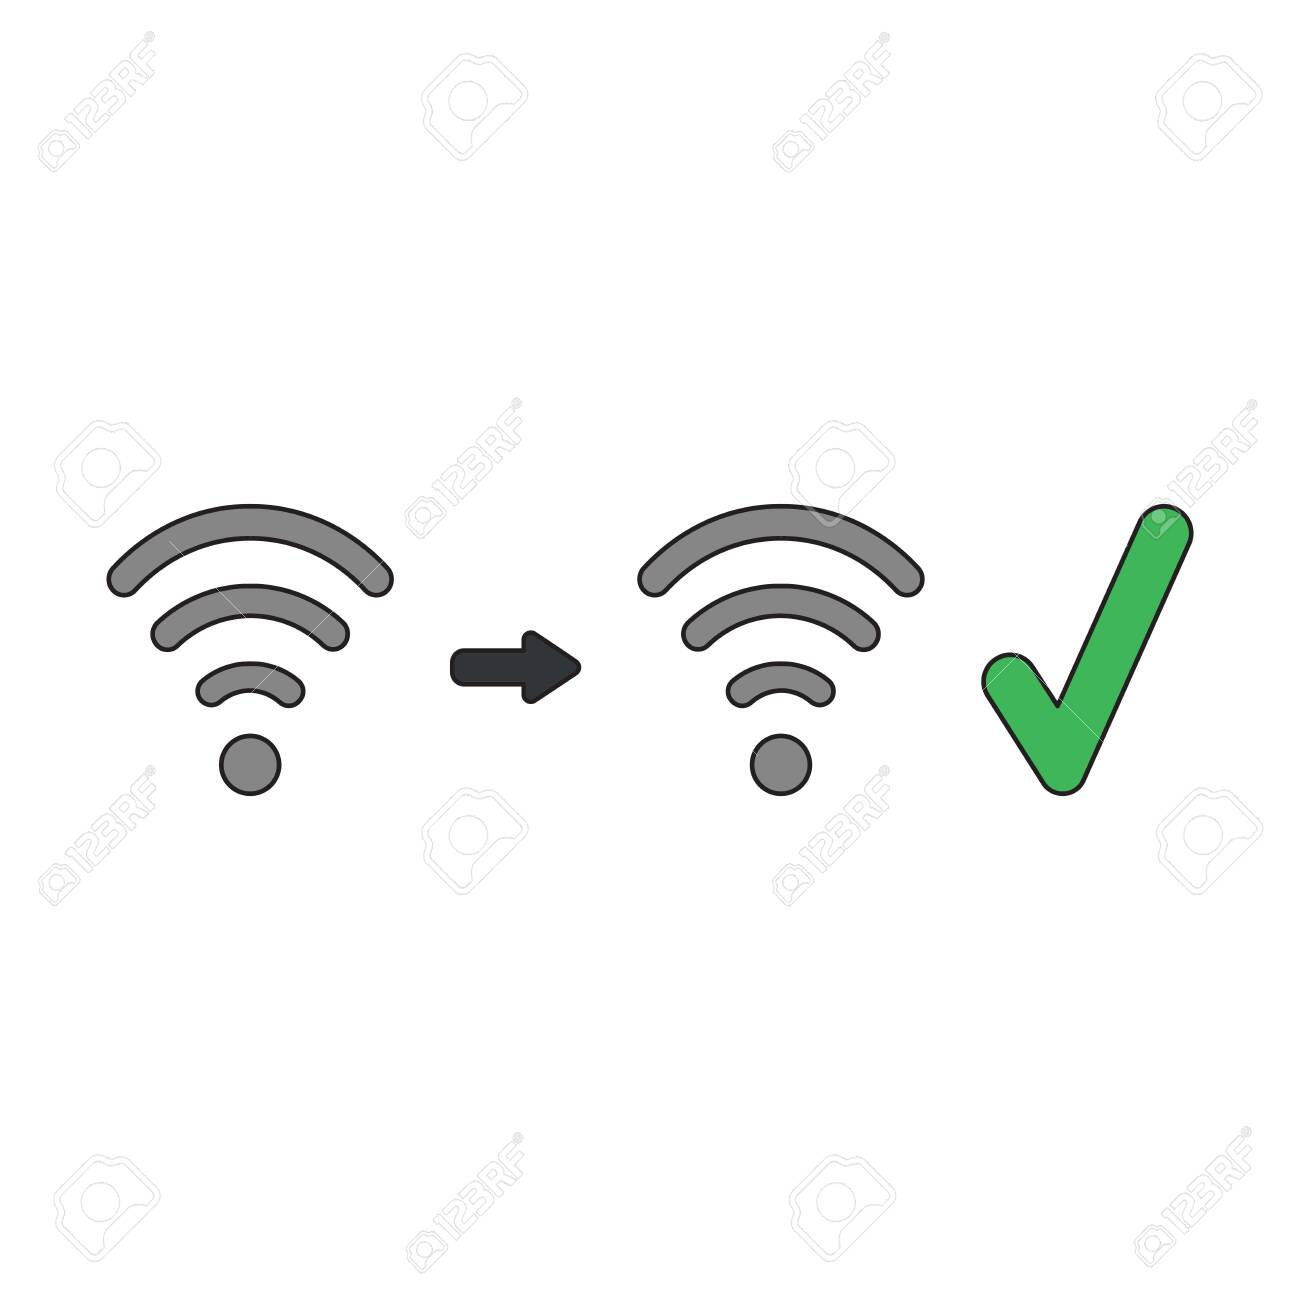 Vector icon concept of wireless wifi symbol signal increase with